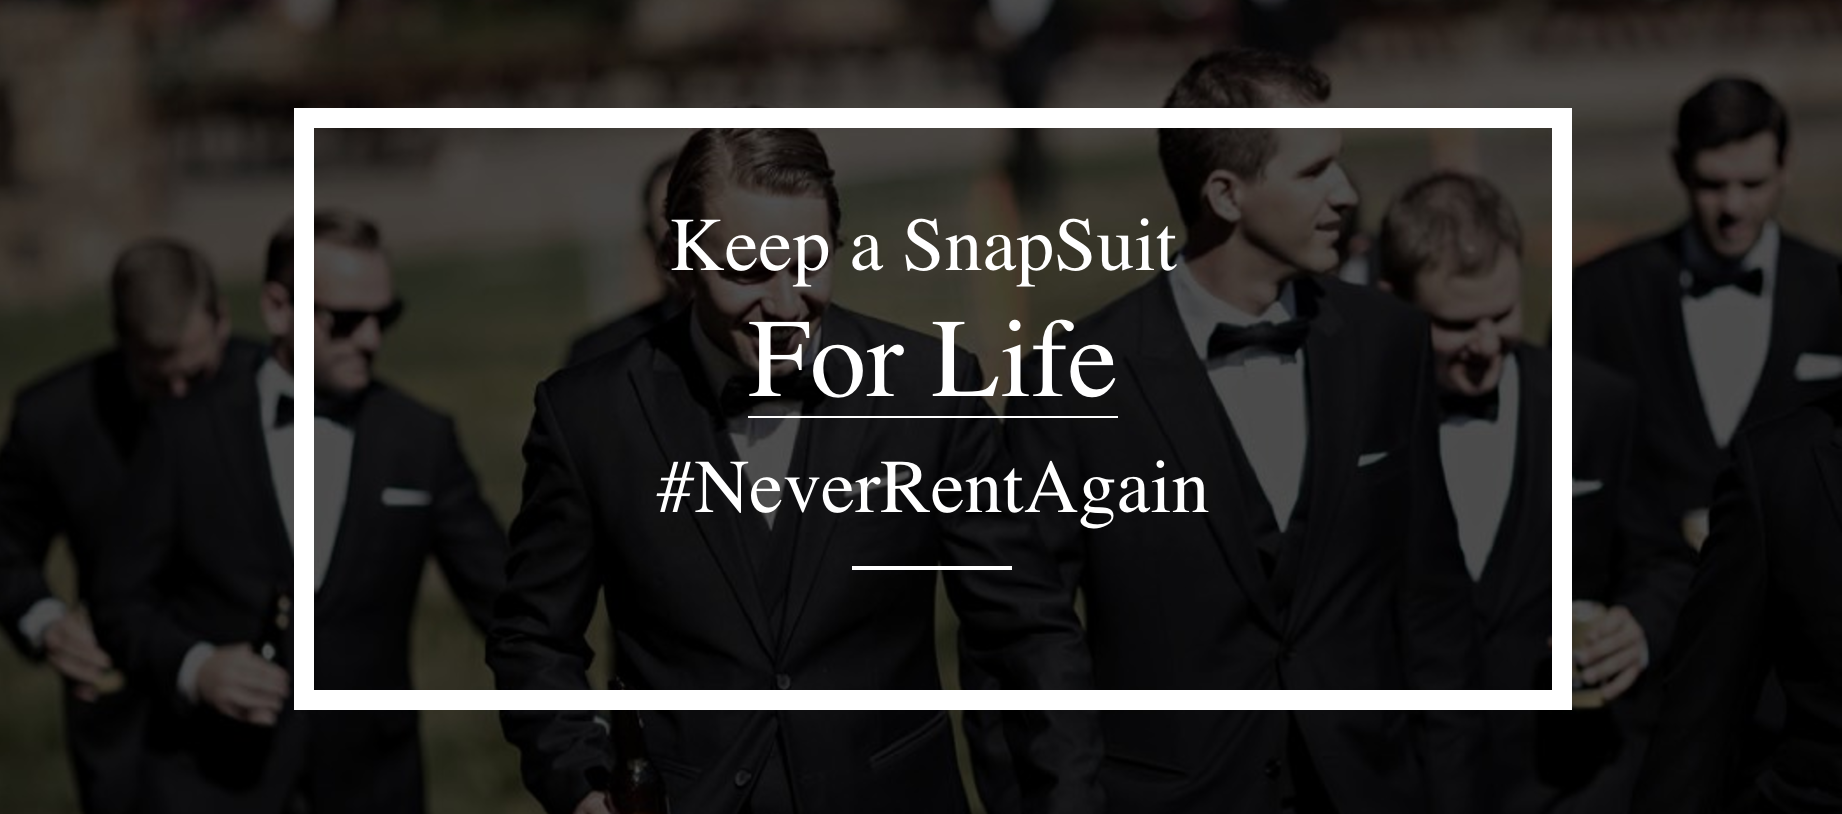 SnapSuit's wants you to #NeverRentAgain